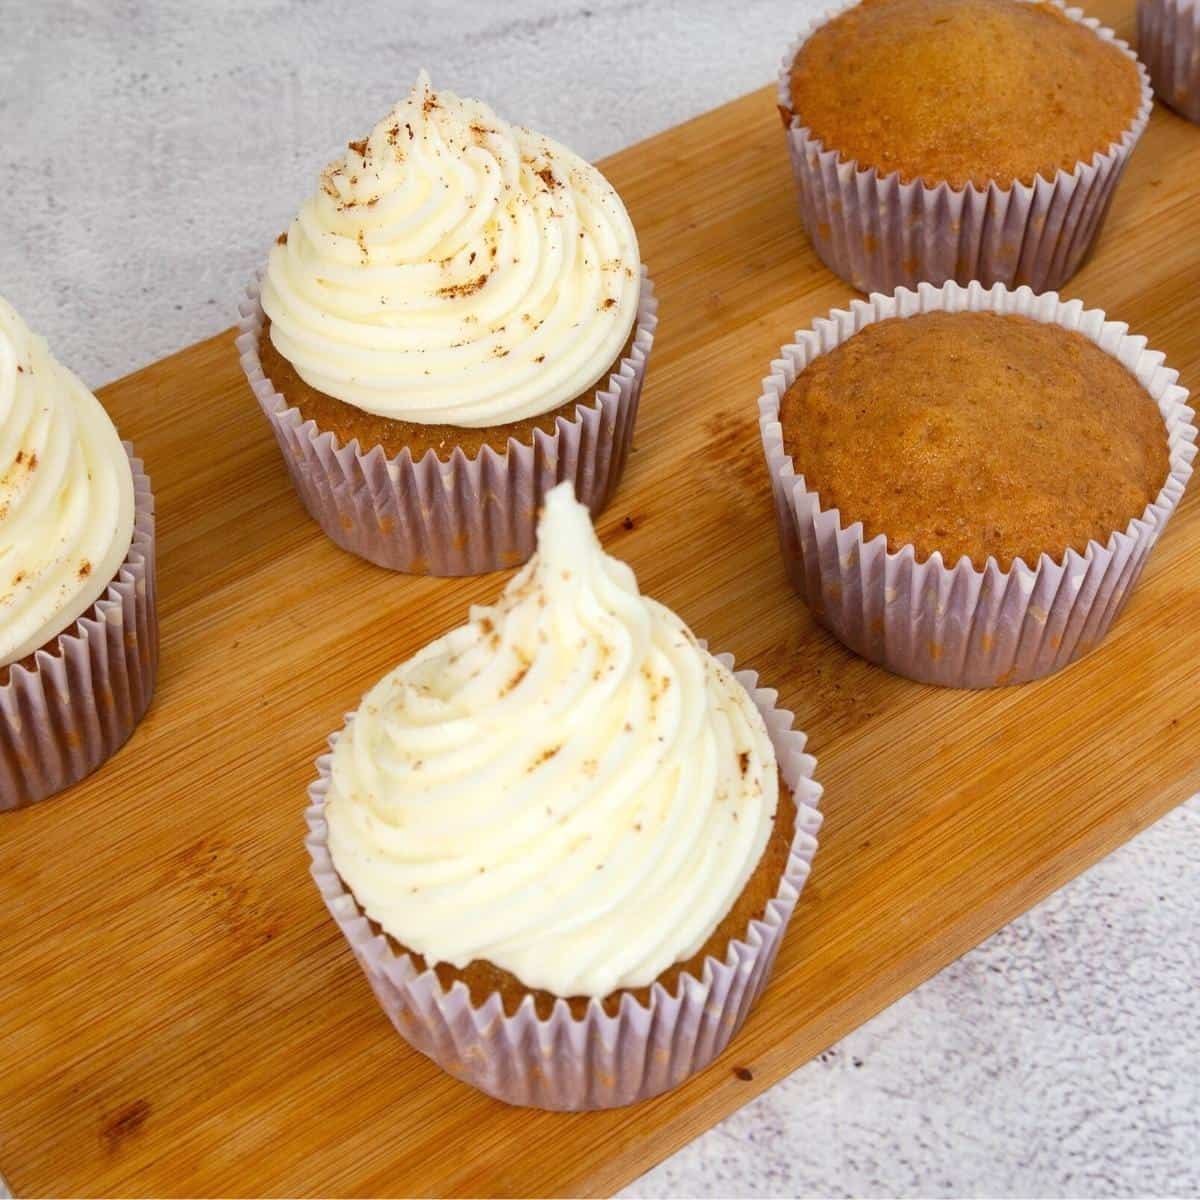 Frosted cupcakes on a wooden board.